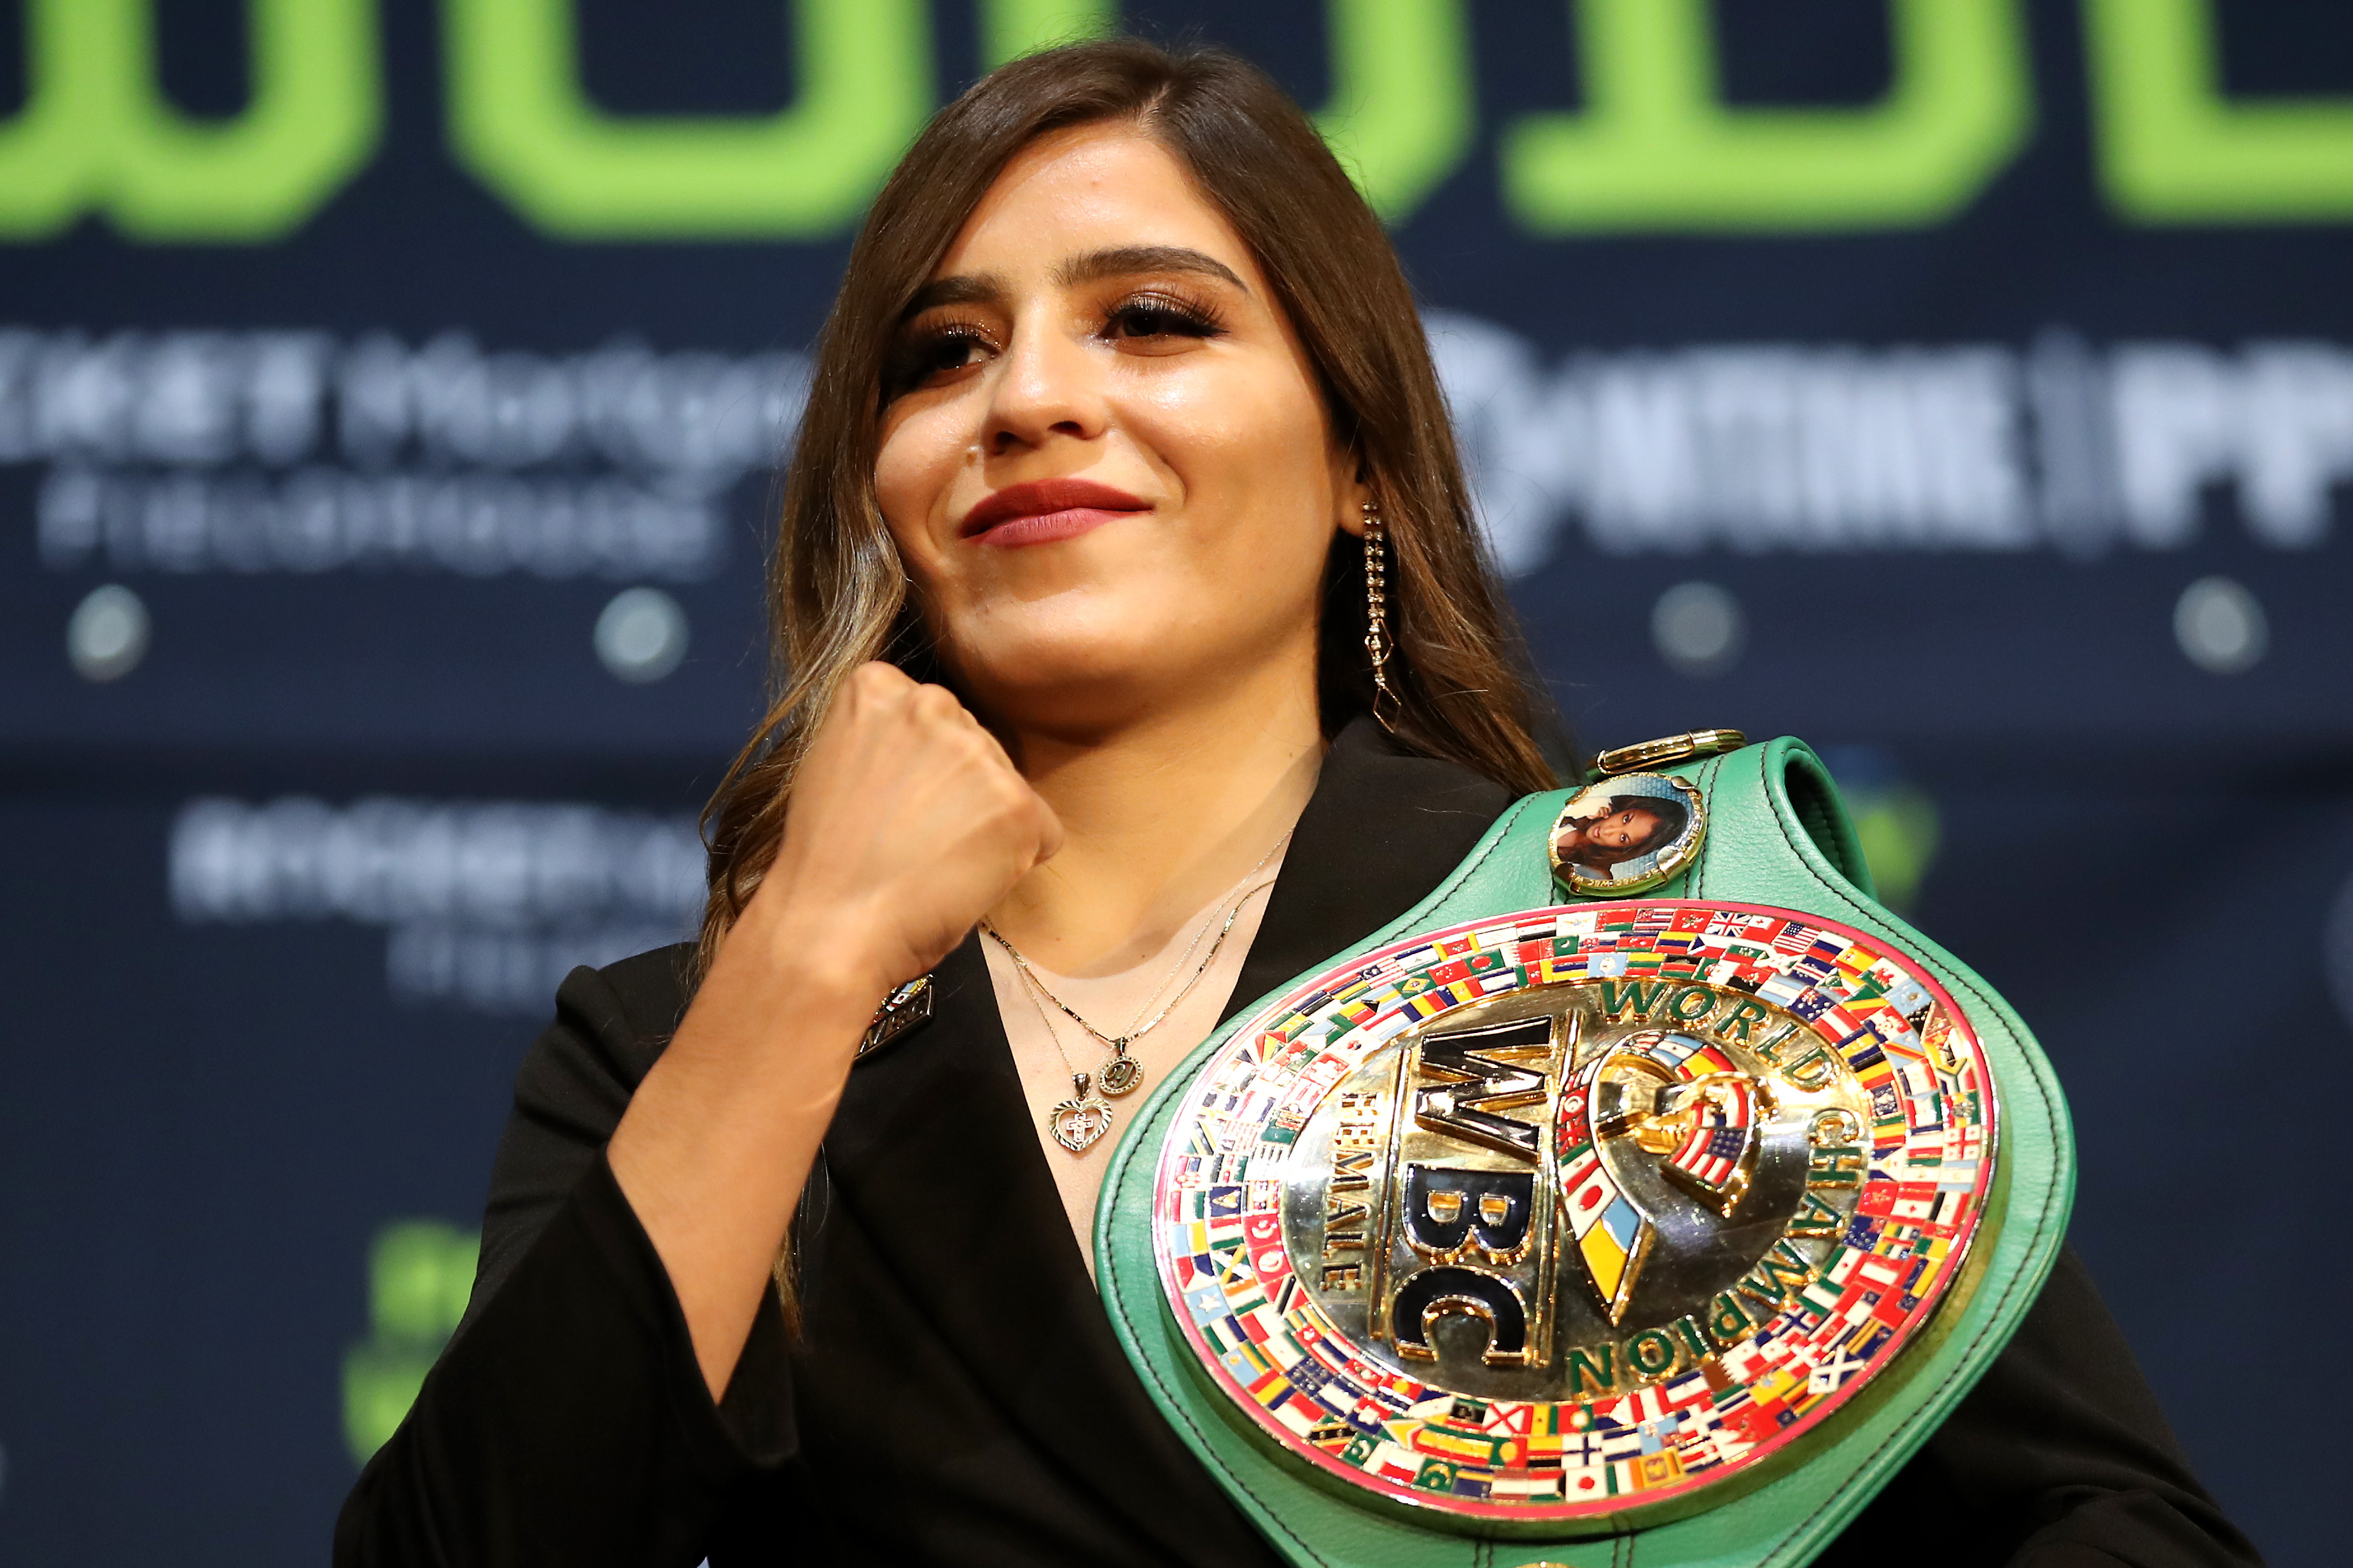 Yamileth Mercado poses for media with her belts during a press conference before her fight against Amanda Serrano at The Novo by Microsoft at L.A. Live on July 13, 2021 in Los Angeles, California.